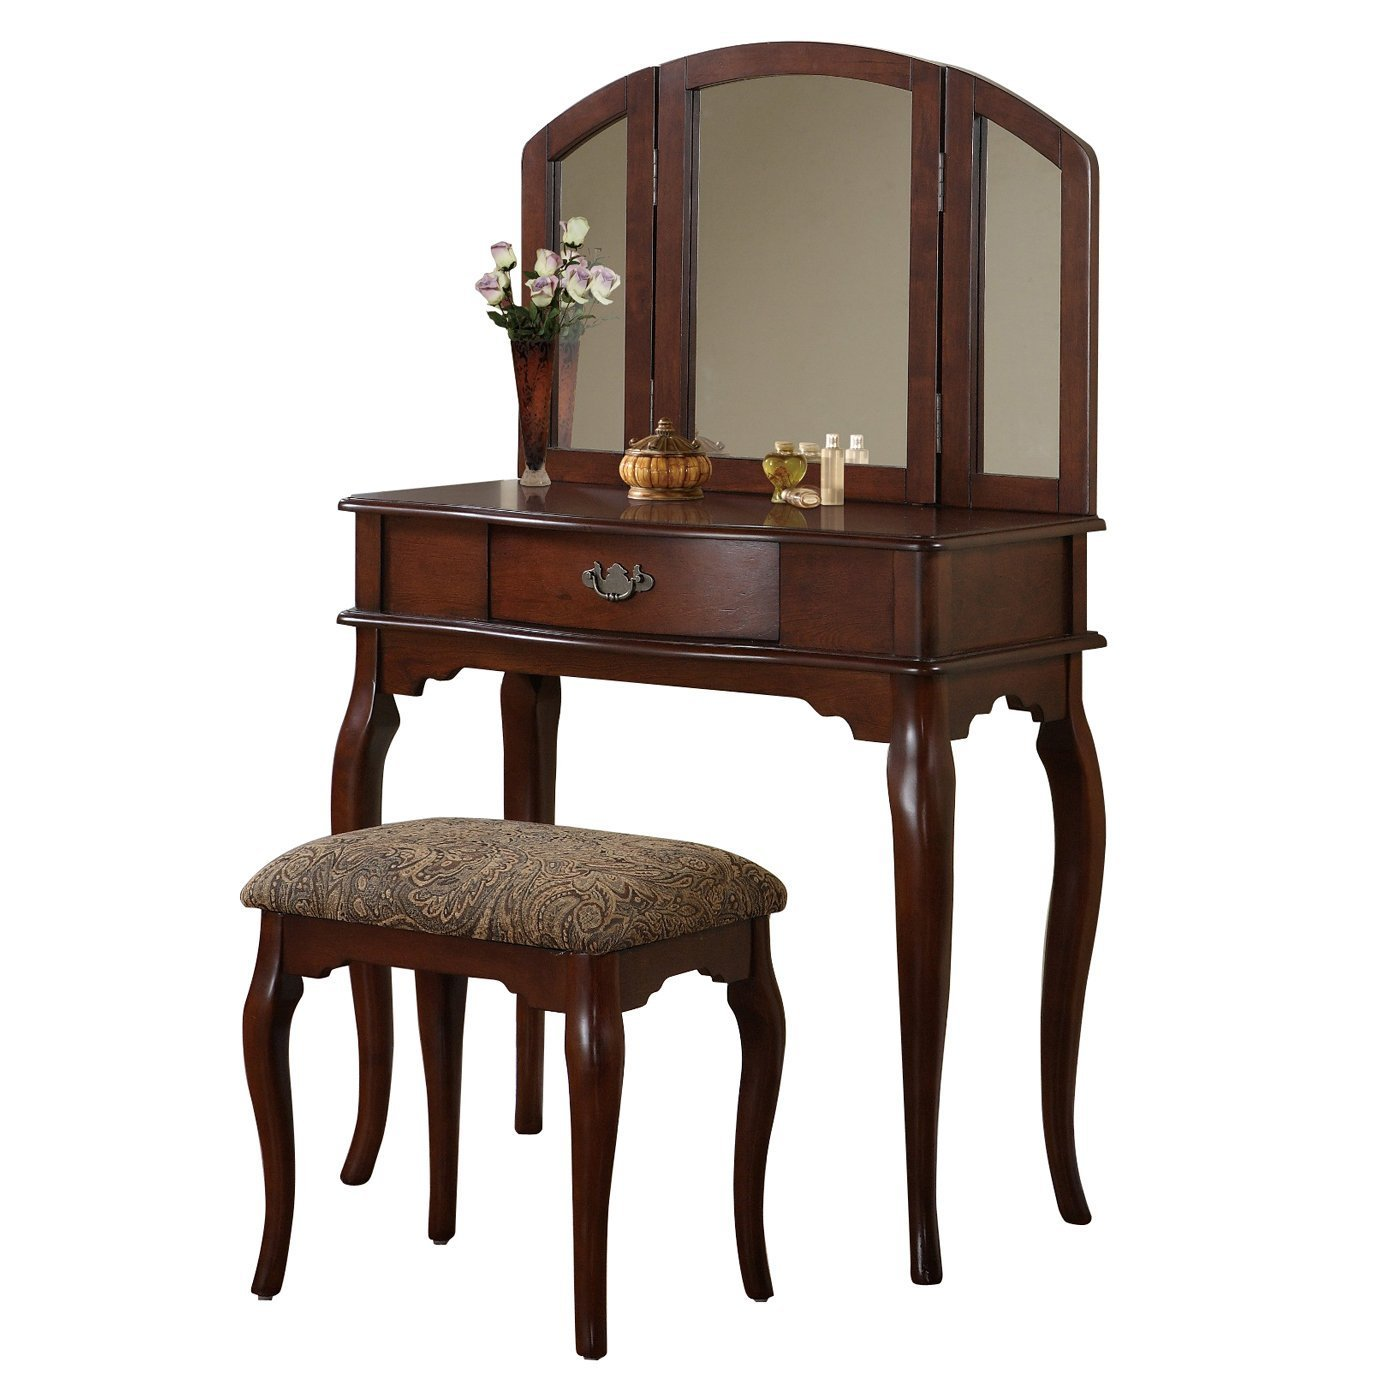 Best Poundex Furniture F406 Bobkona Jaden Vanity Set With Stool Atg Stores With Pictures